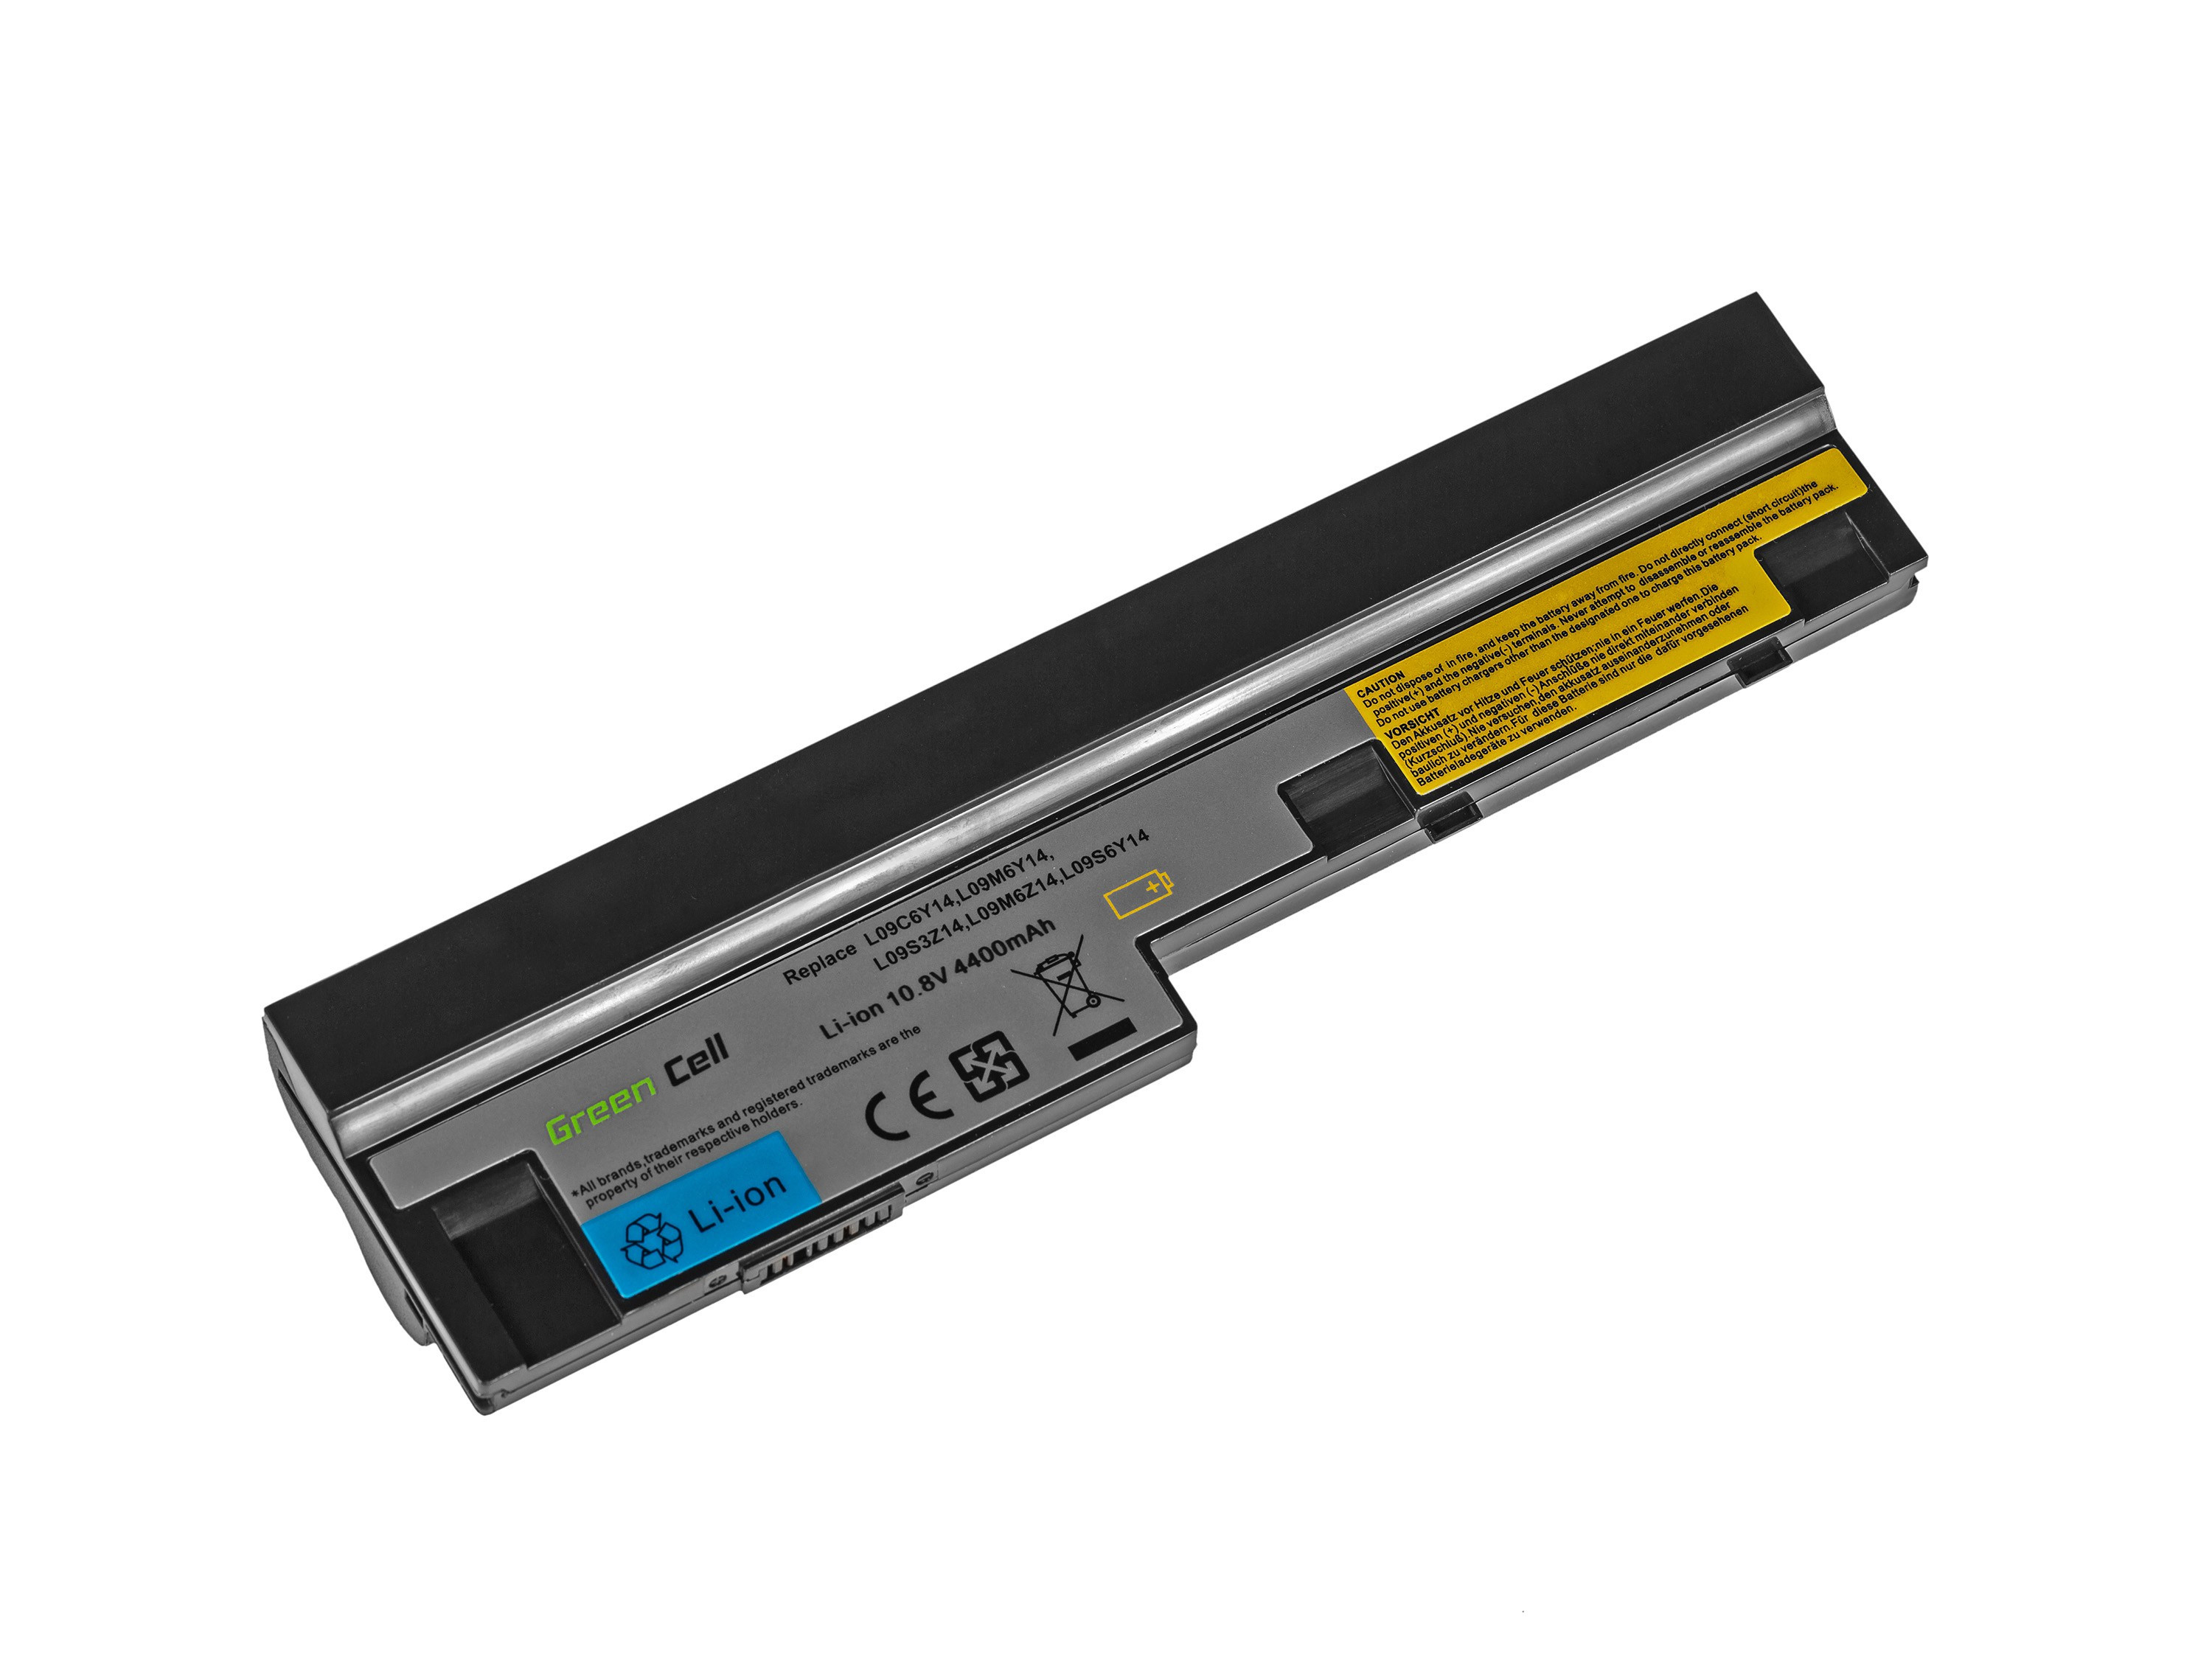 Green Cell Battery for Lenovo IdeaPad S10-3 S10-3c S10-3s S100 S205 U160 U165 / 11,1V 4400mAh